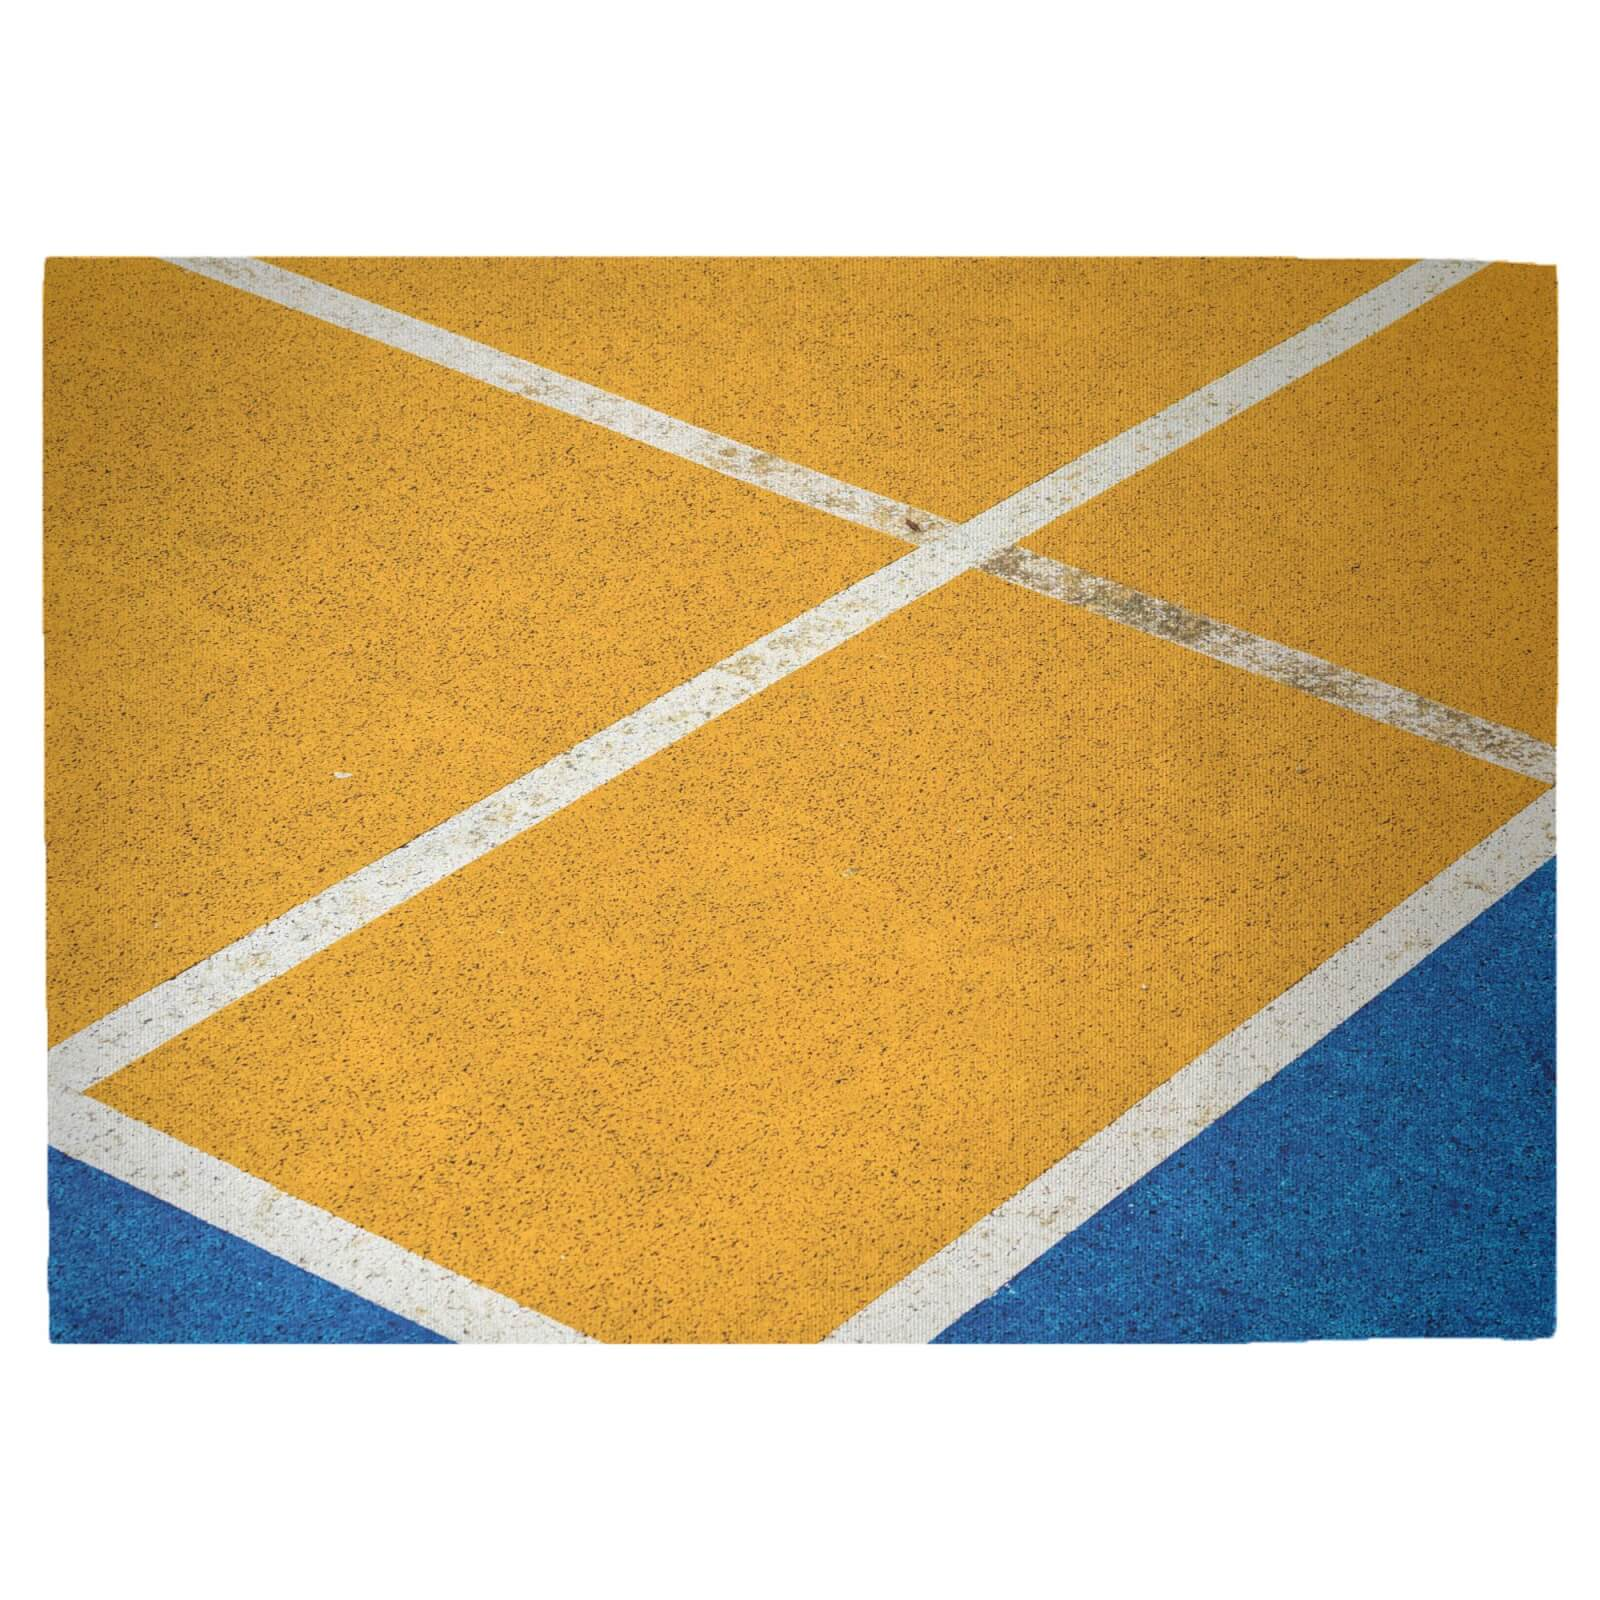 Contrast Pitch Woven Rug - Large